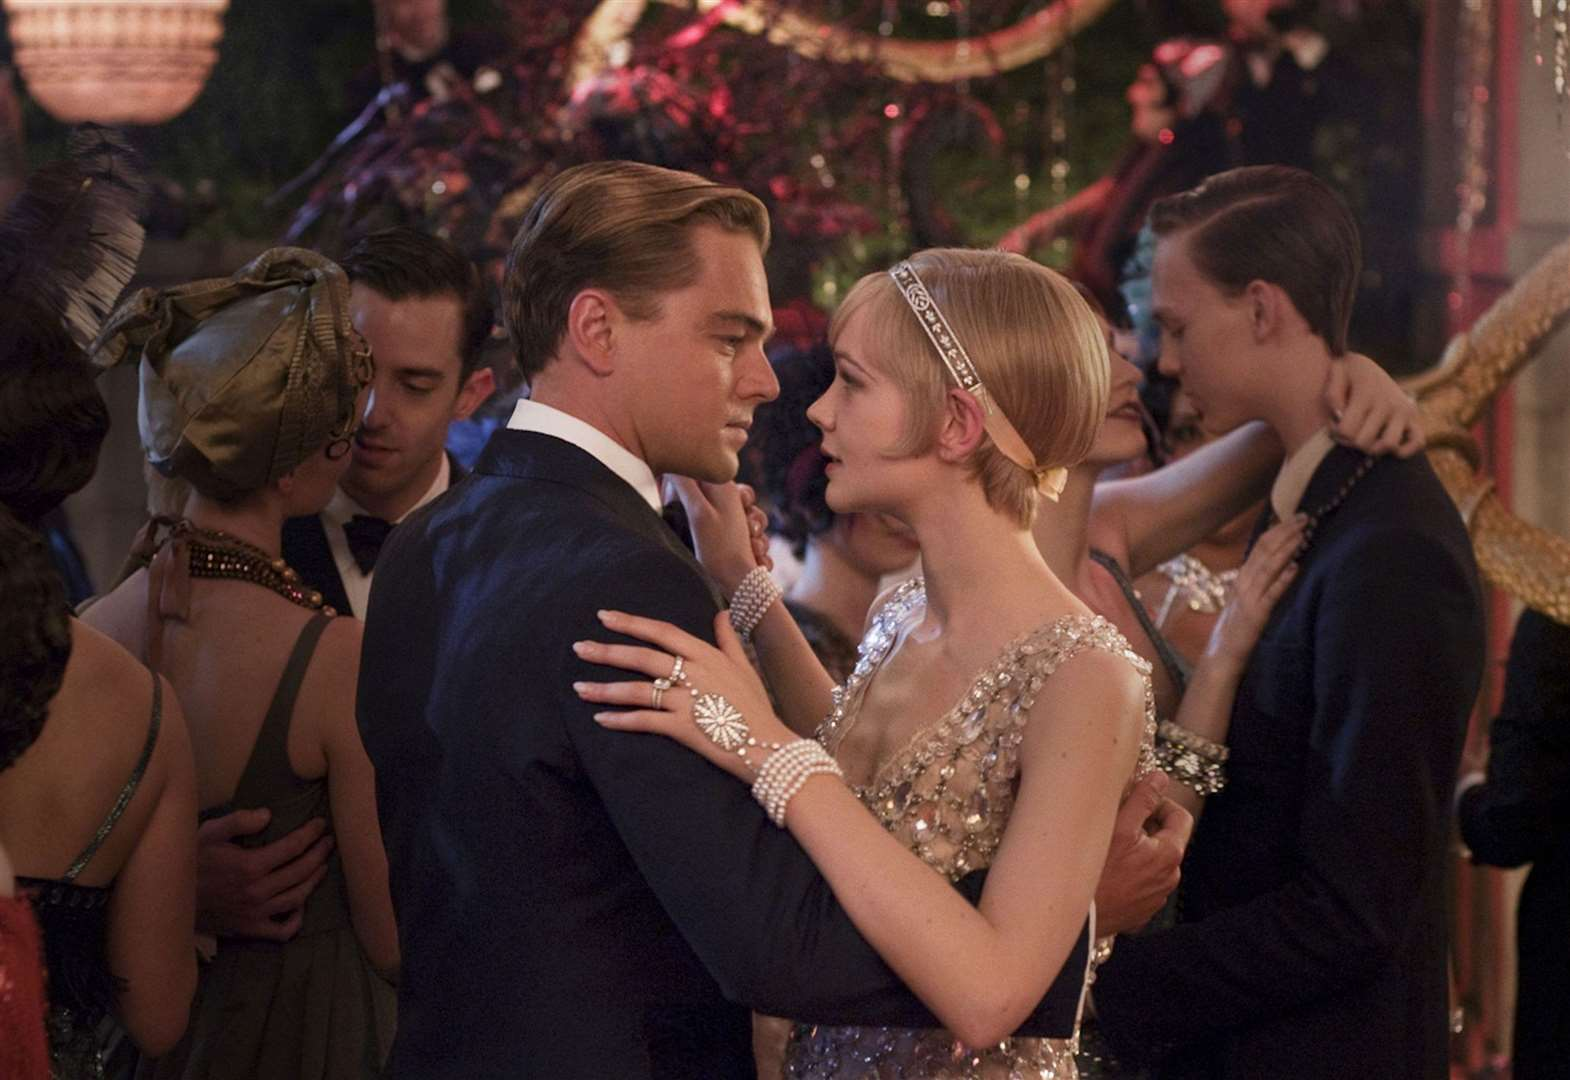 The Great Gatsby gets high-flying screening